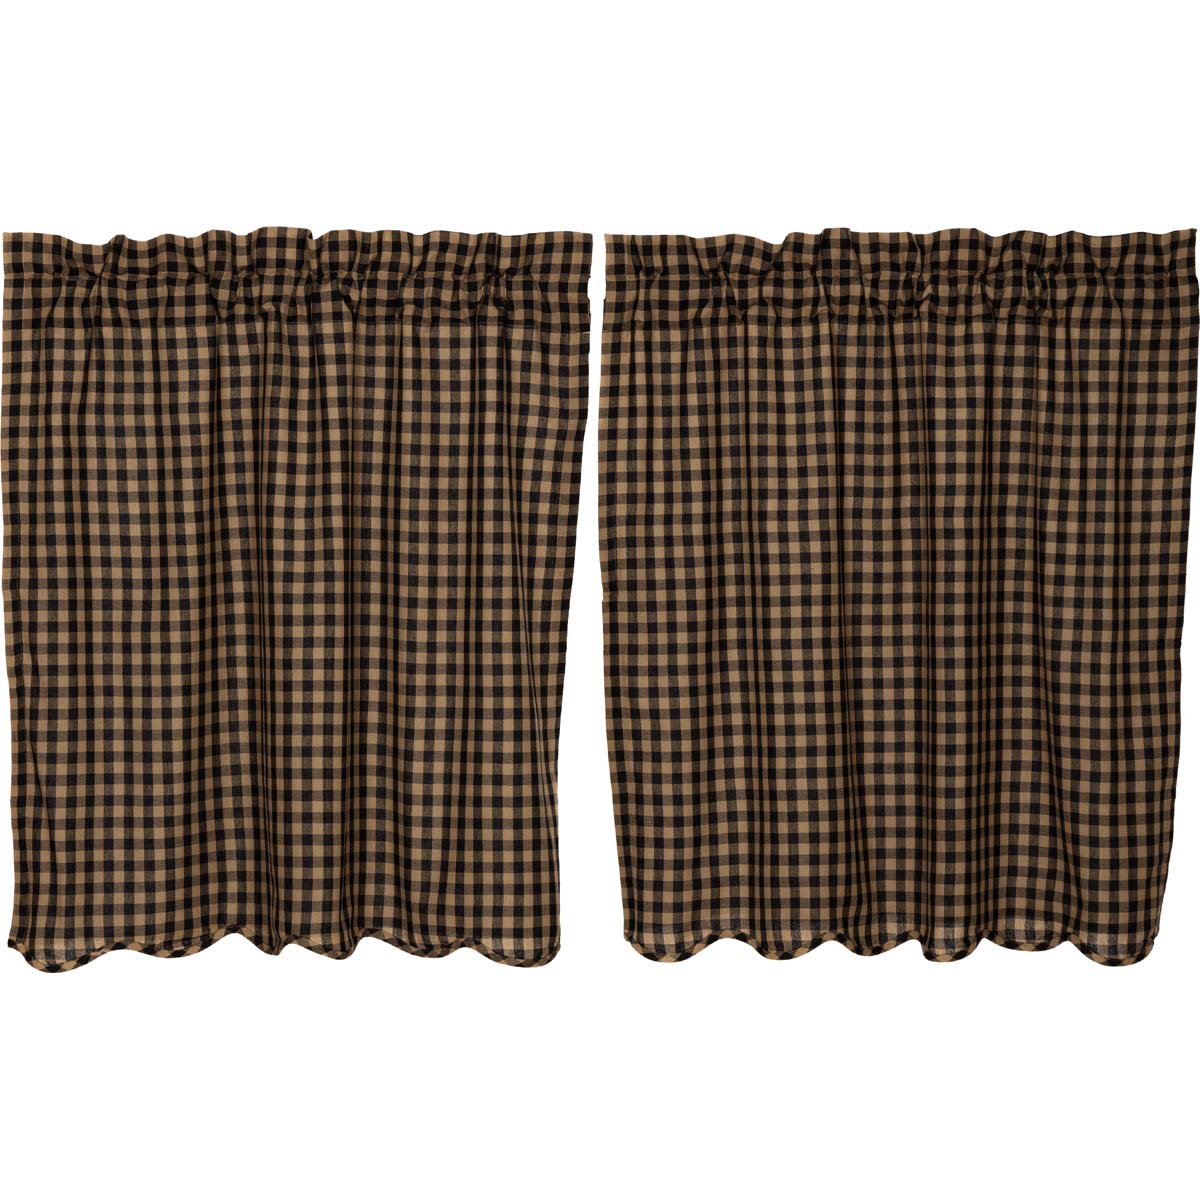 Black Check Scalloped Tier Set of 2 L36xW36